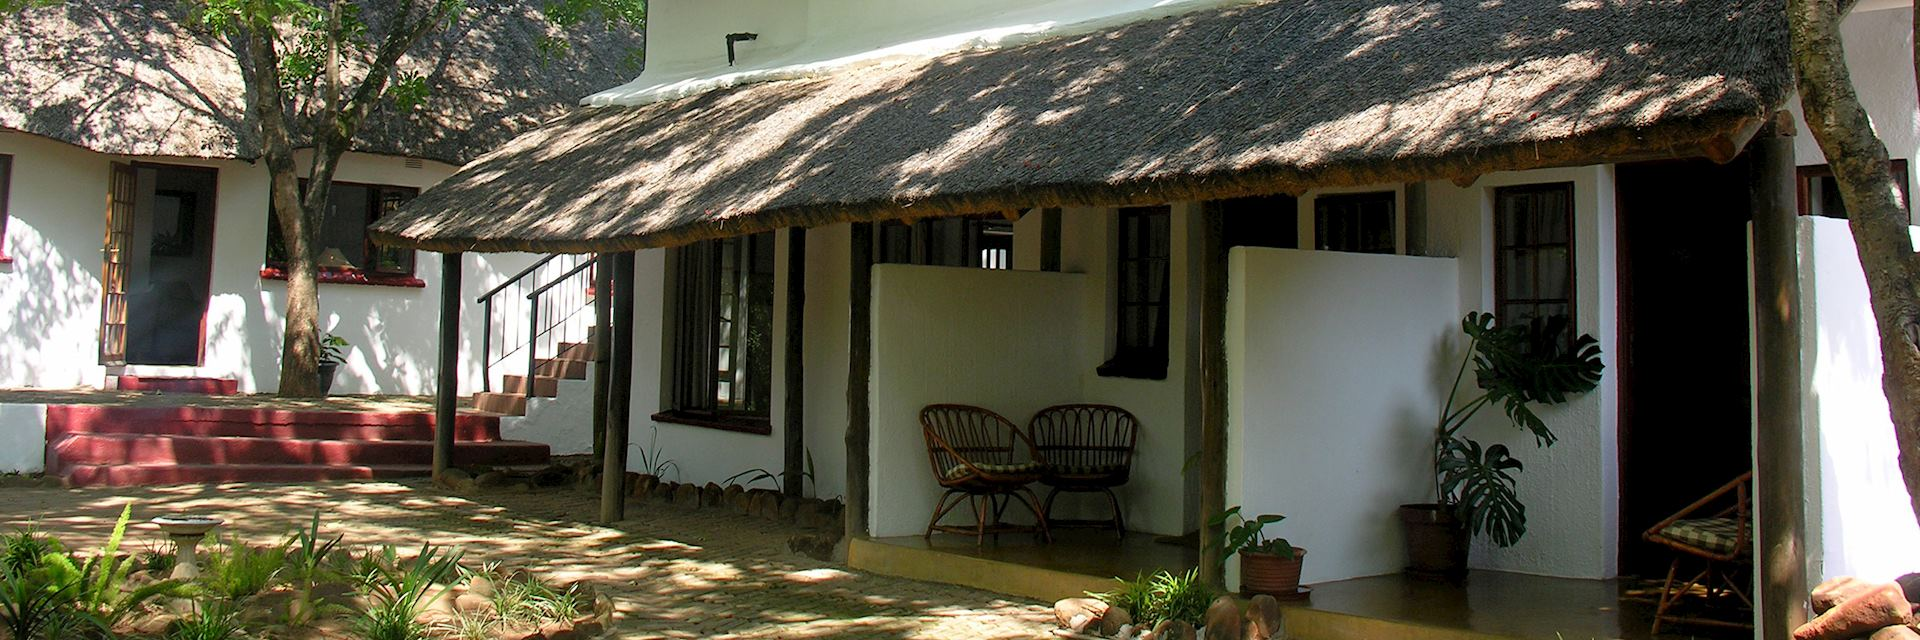 Rissington Inn, South Africa